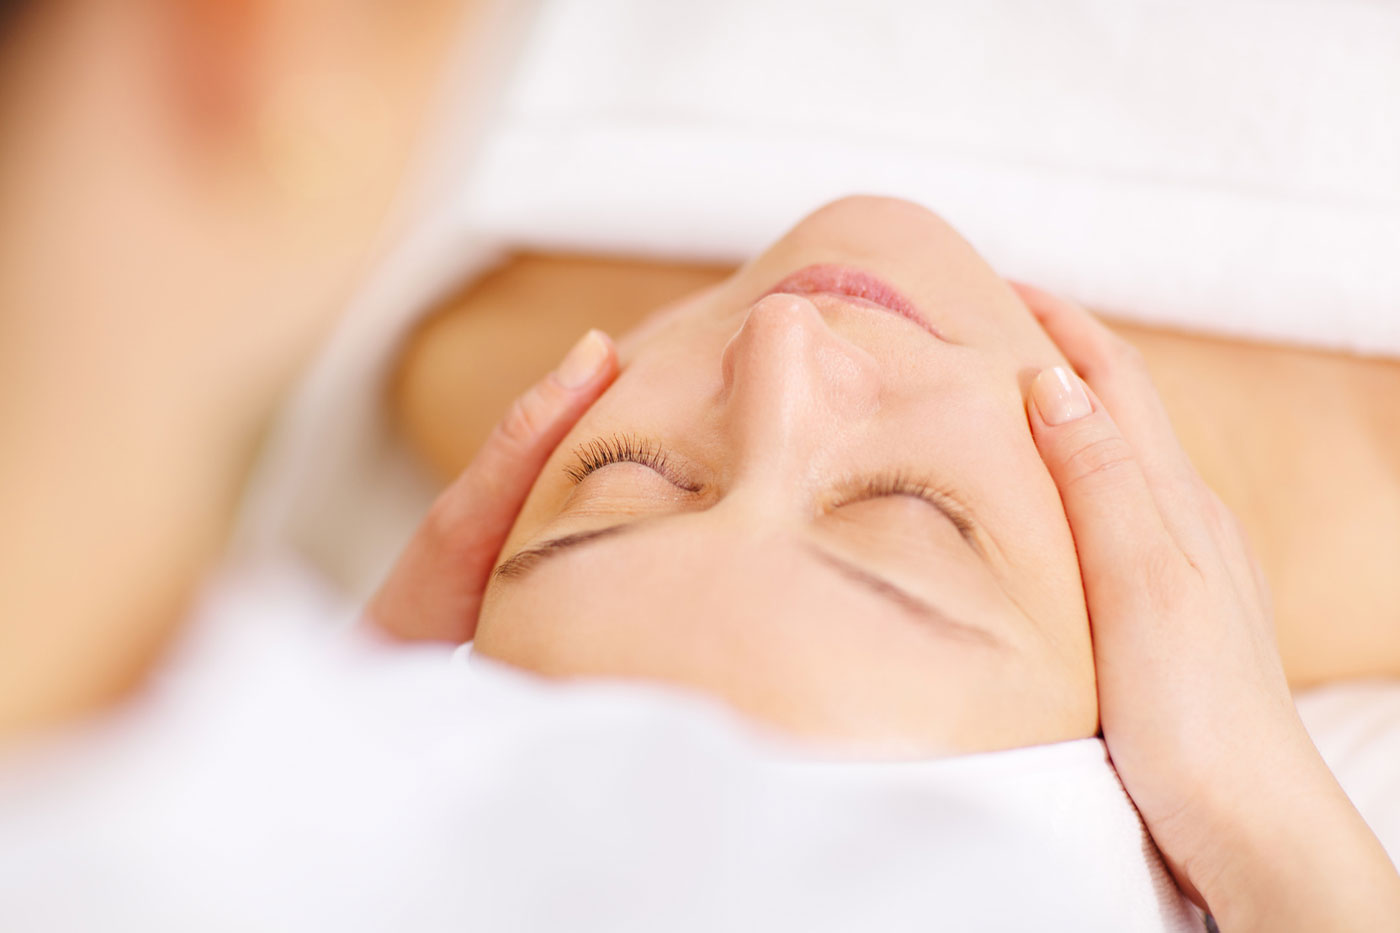 Making Professional Facial Services A Delightful Experience